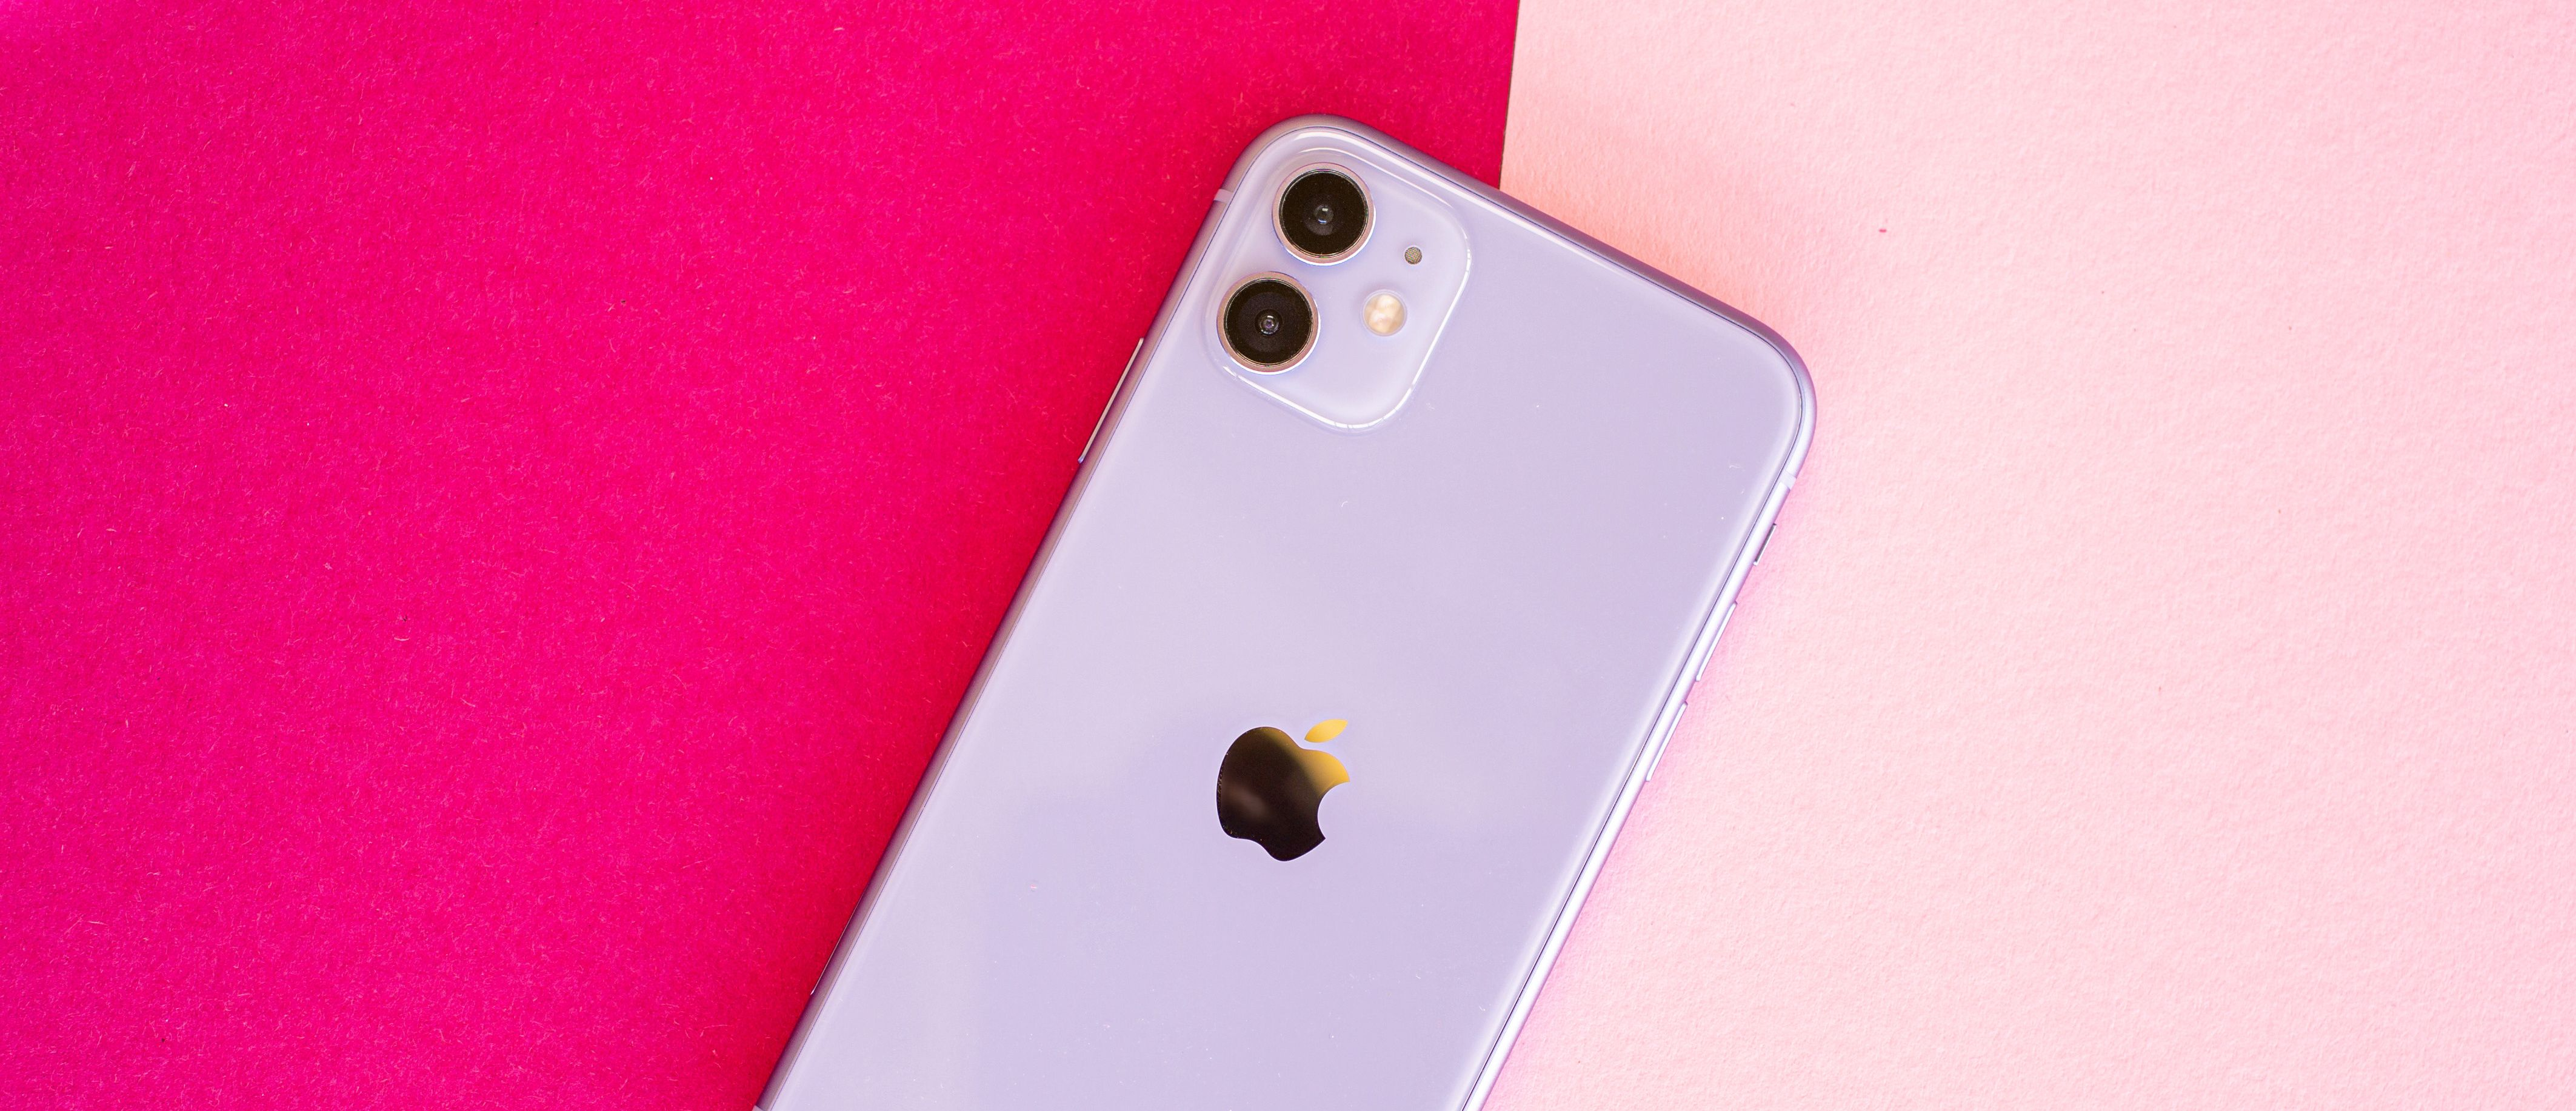 Apple issues revenue warning due to slowdown in China - GSMArena.com news